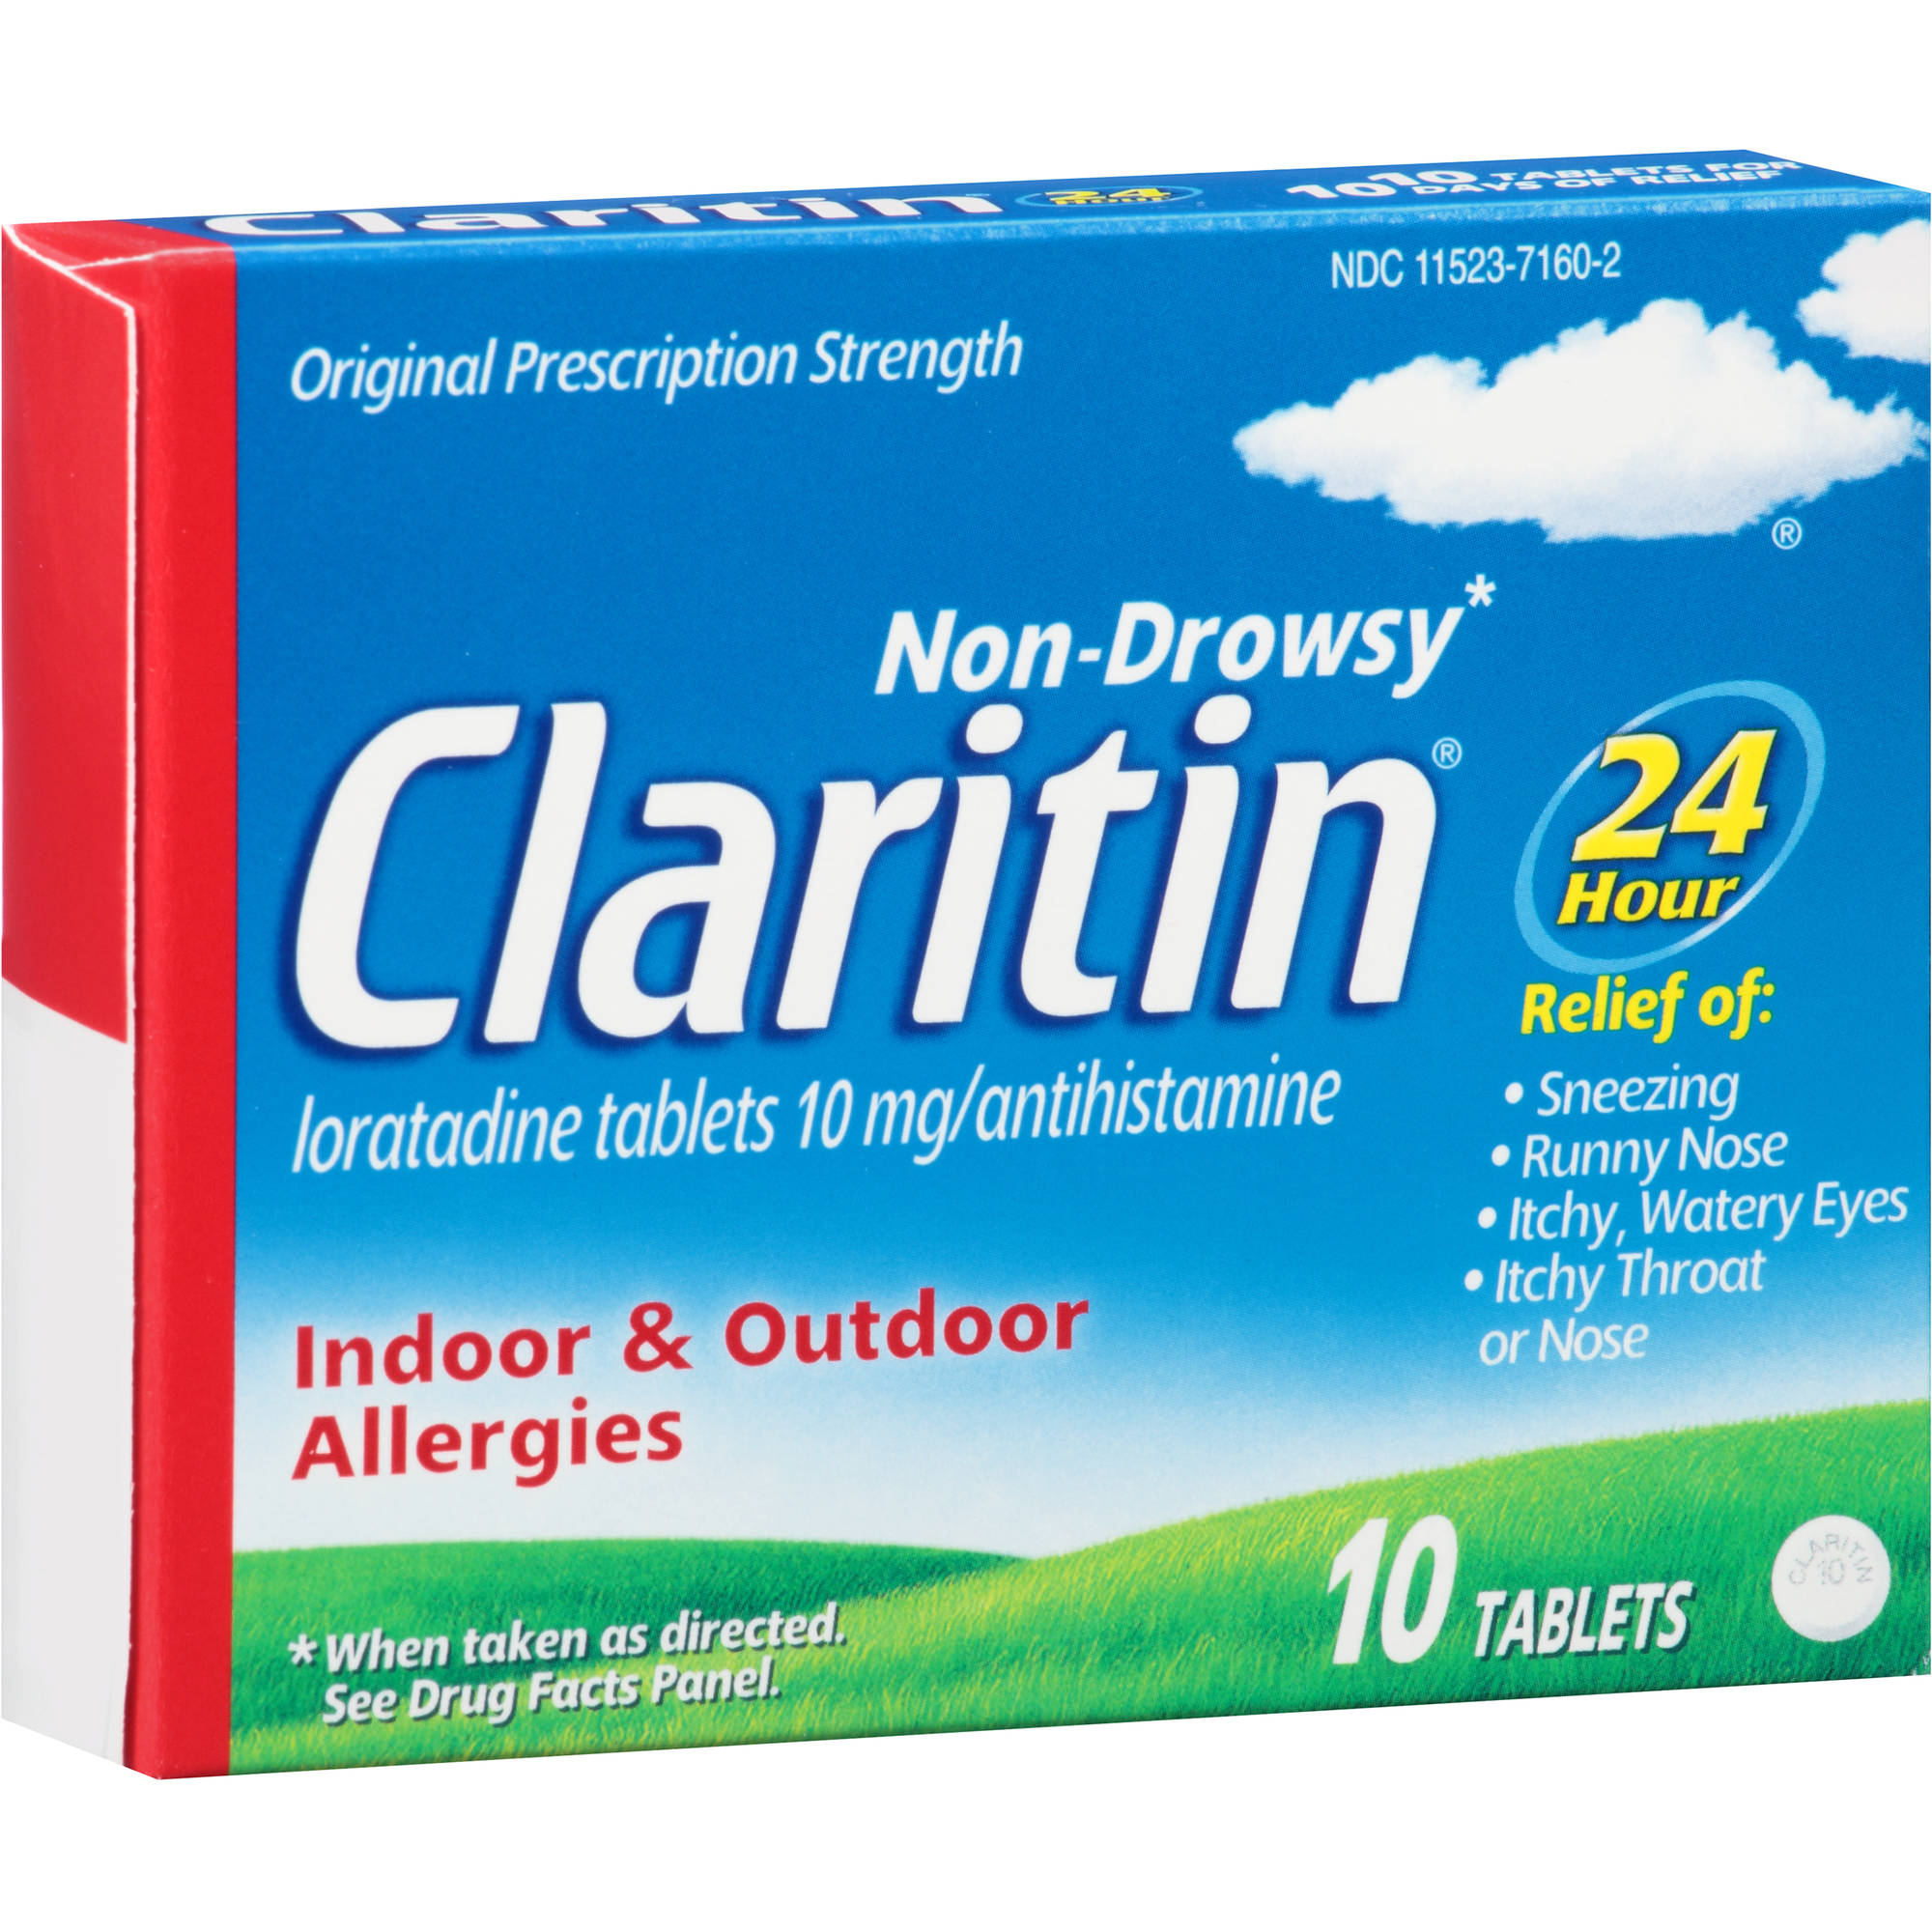 Claritin 24 Hour Non-Drowsy Allergy Relief, 10 count